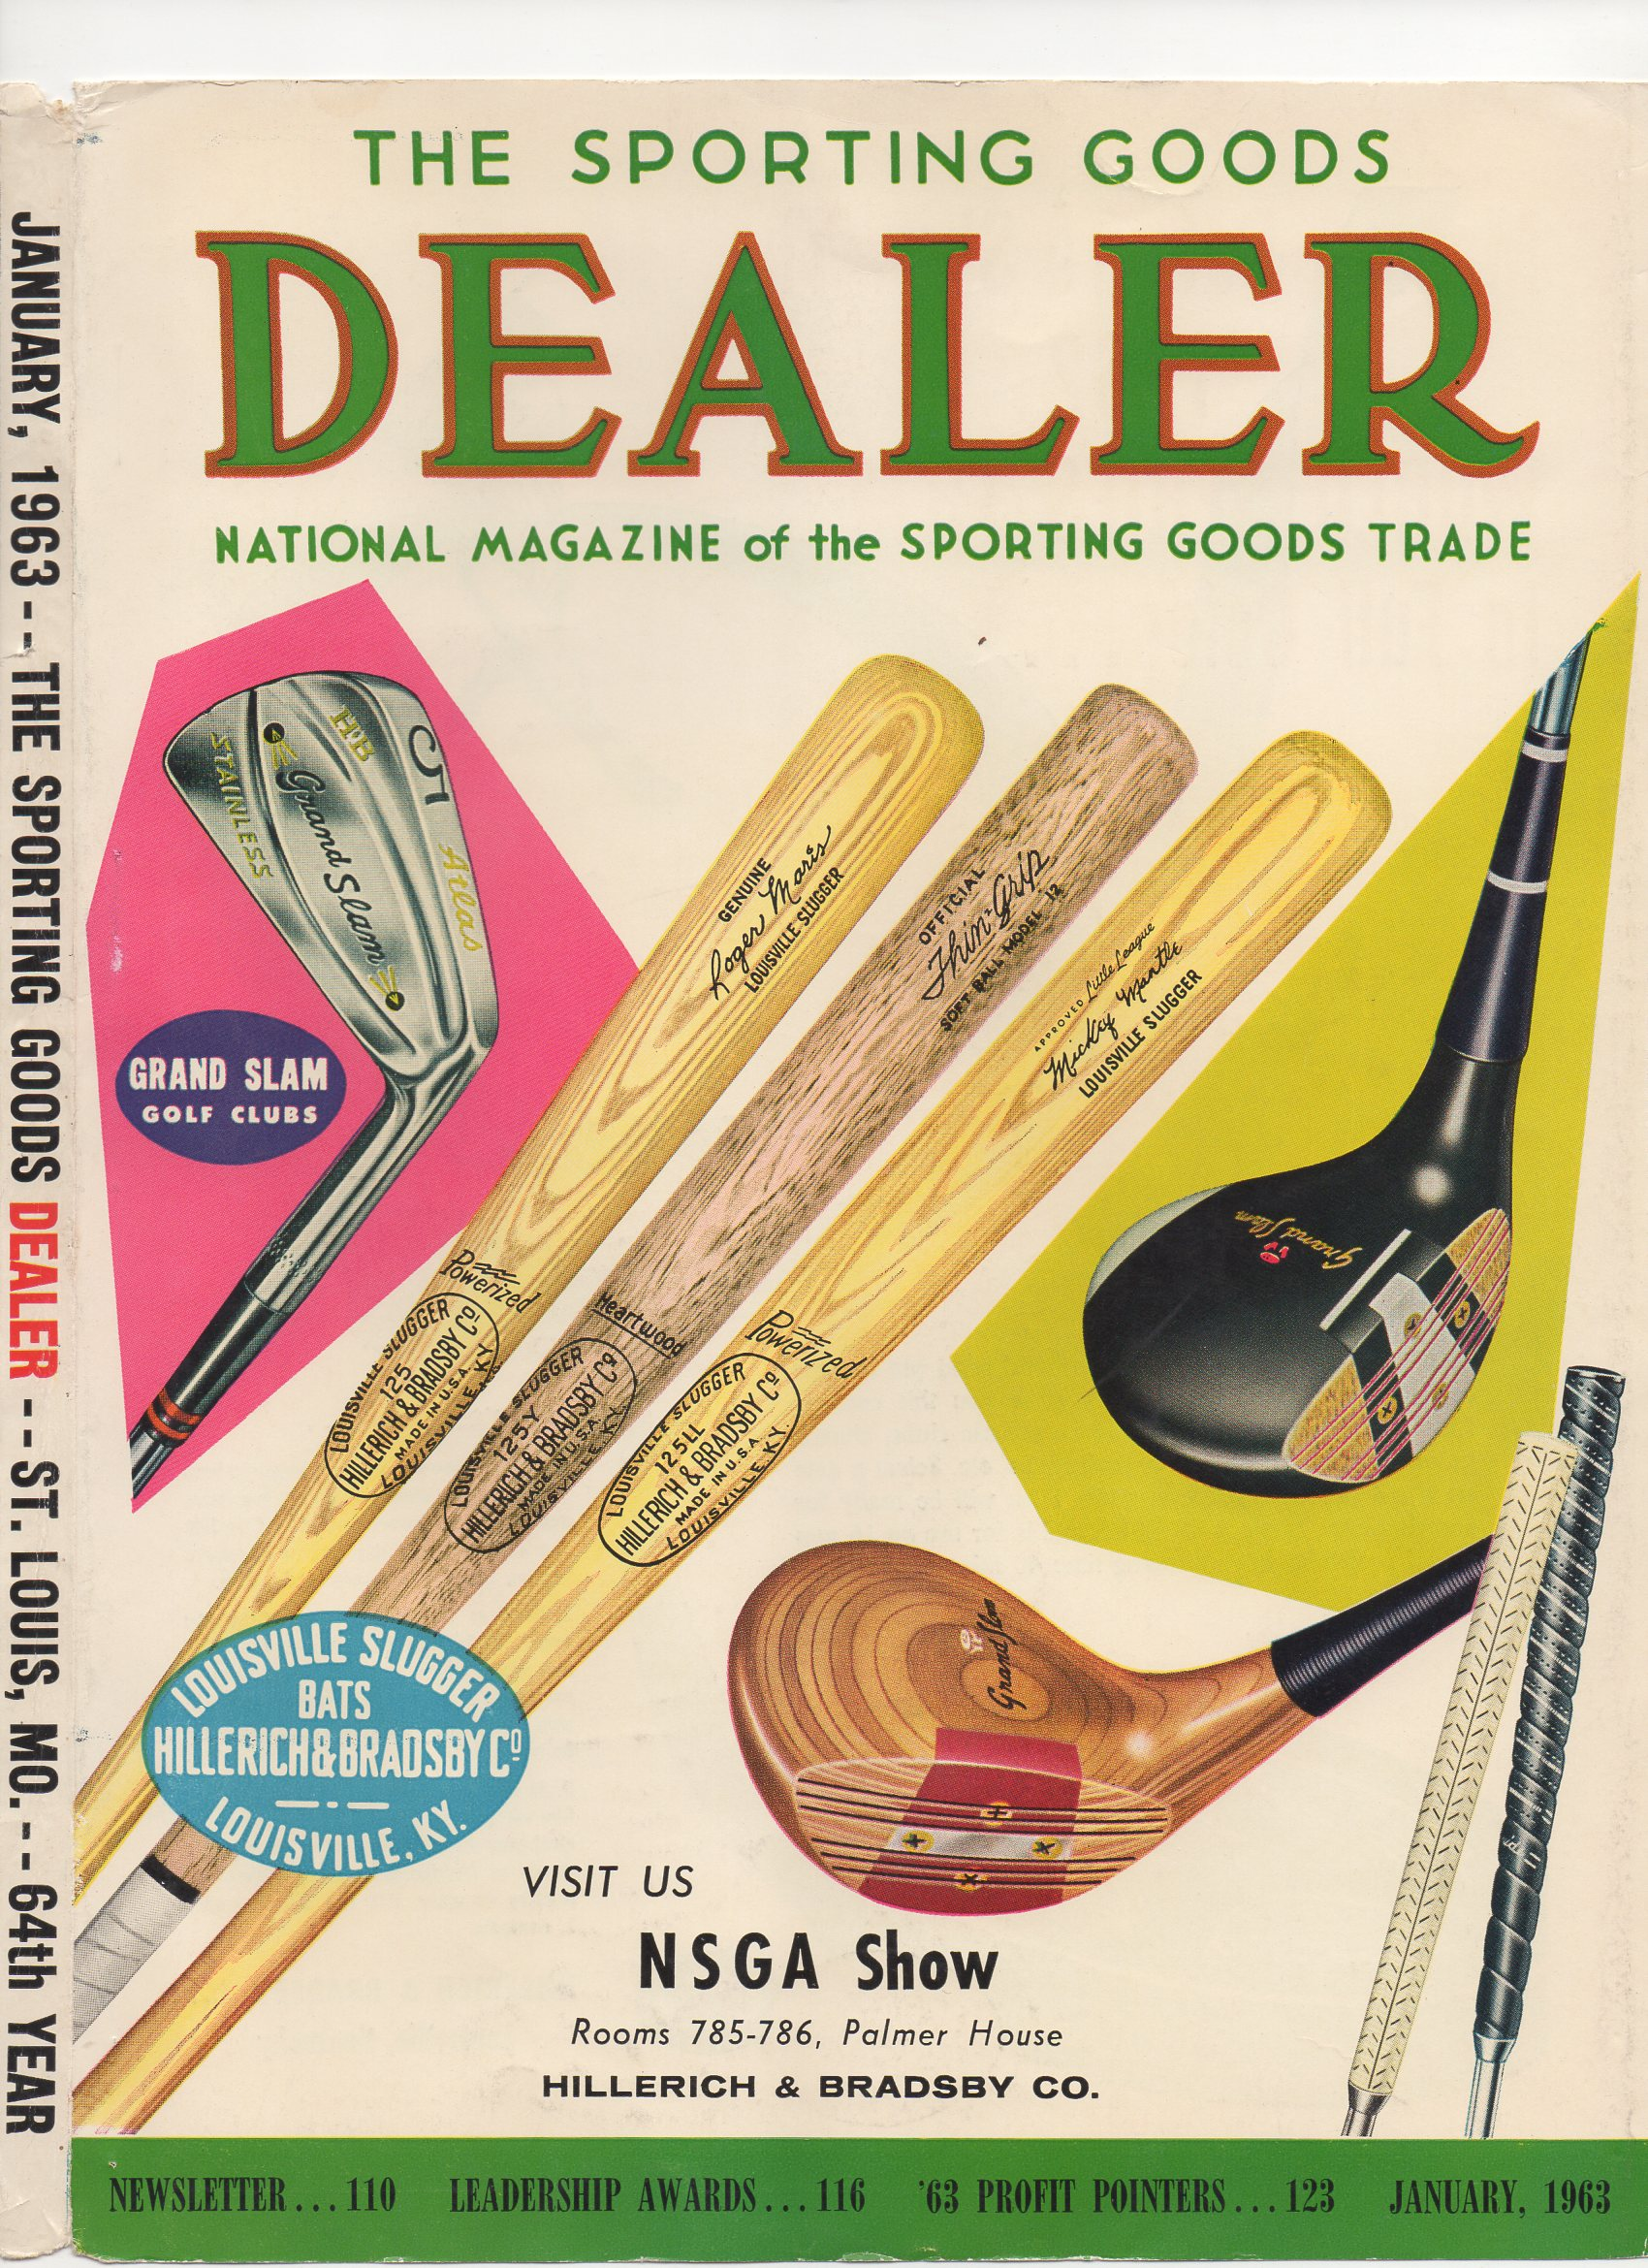 1963 the sporting goods dealer, january, newsletter no. 110